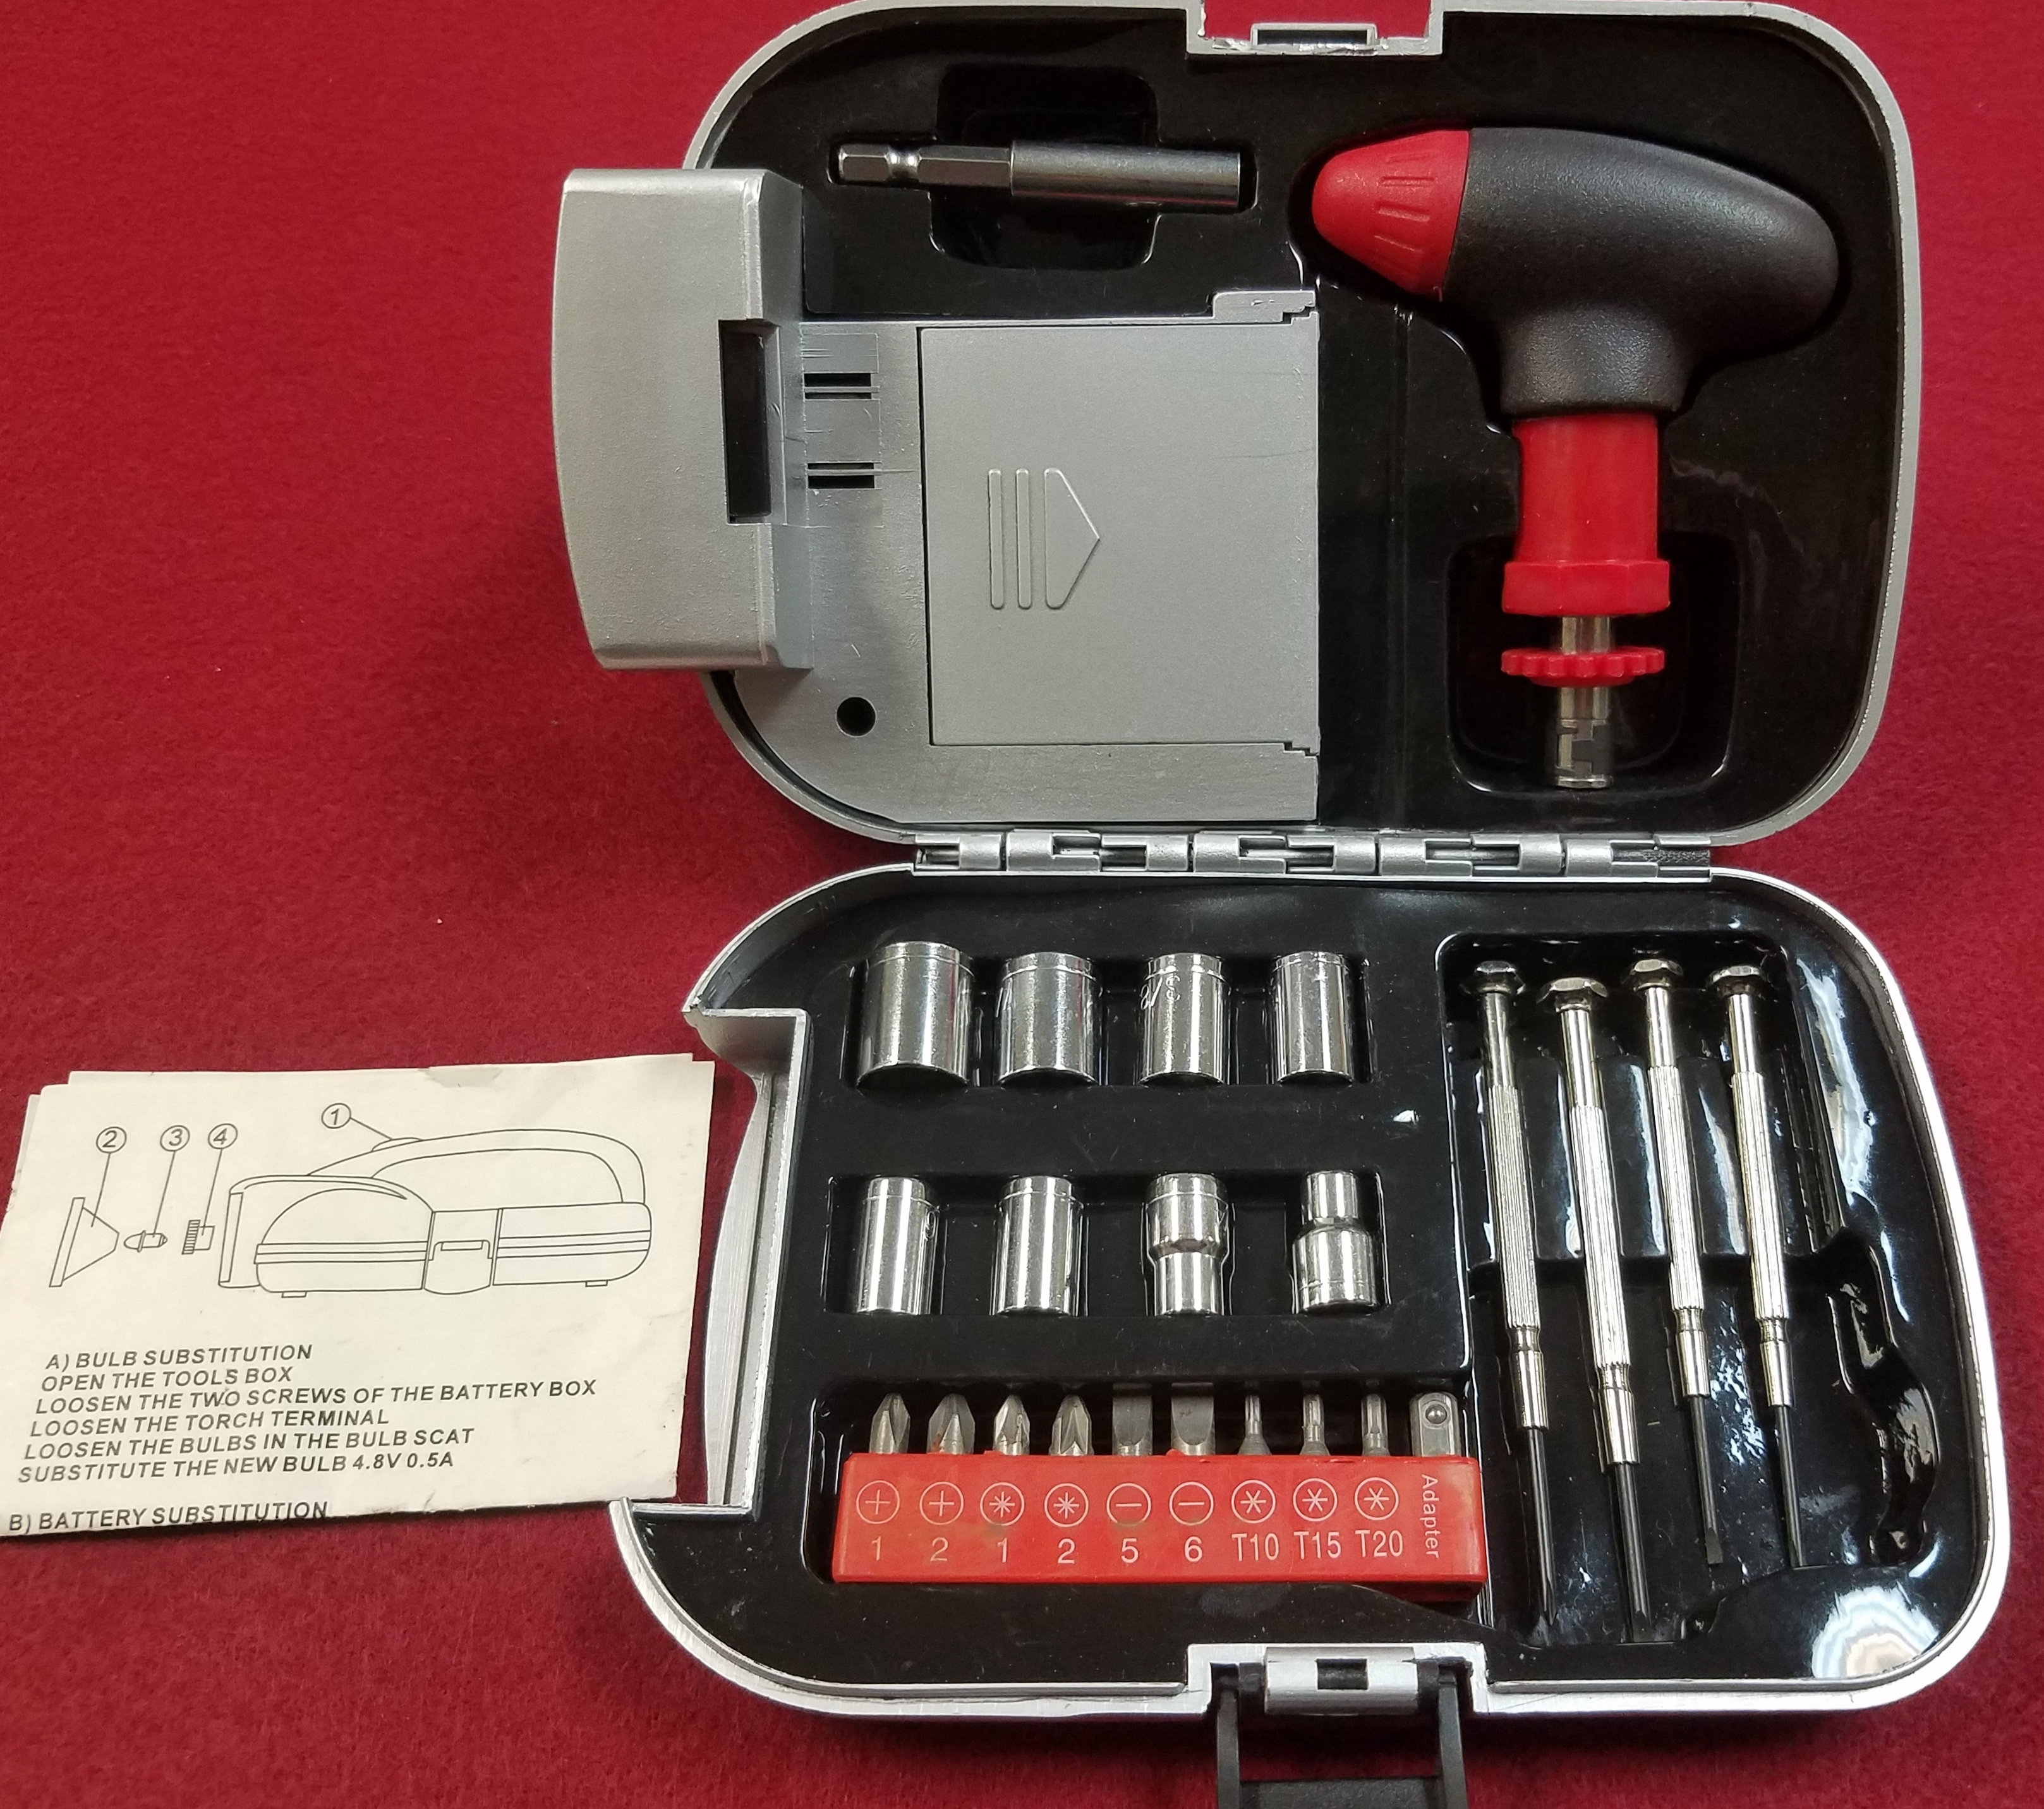 TOOLS: AMERICAN BUILDER - FLASHLIGHT AND SOCKET TOOL SET W/ CASE